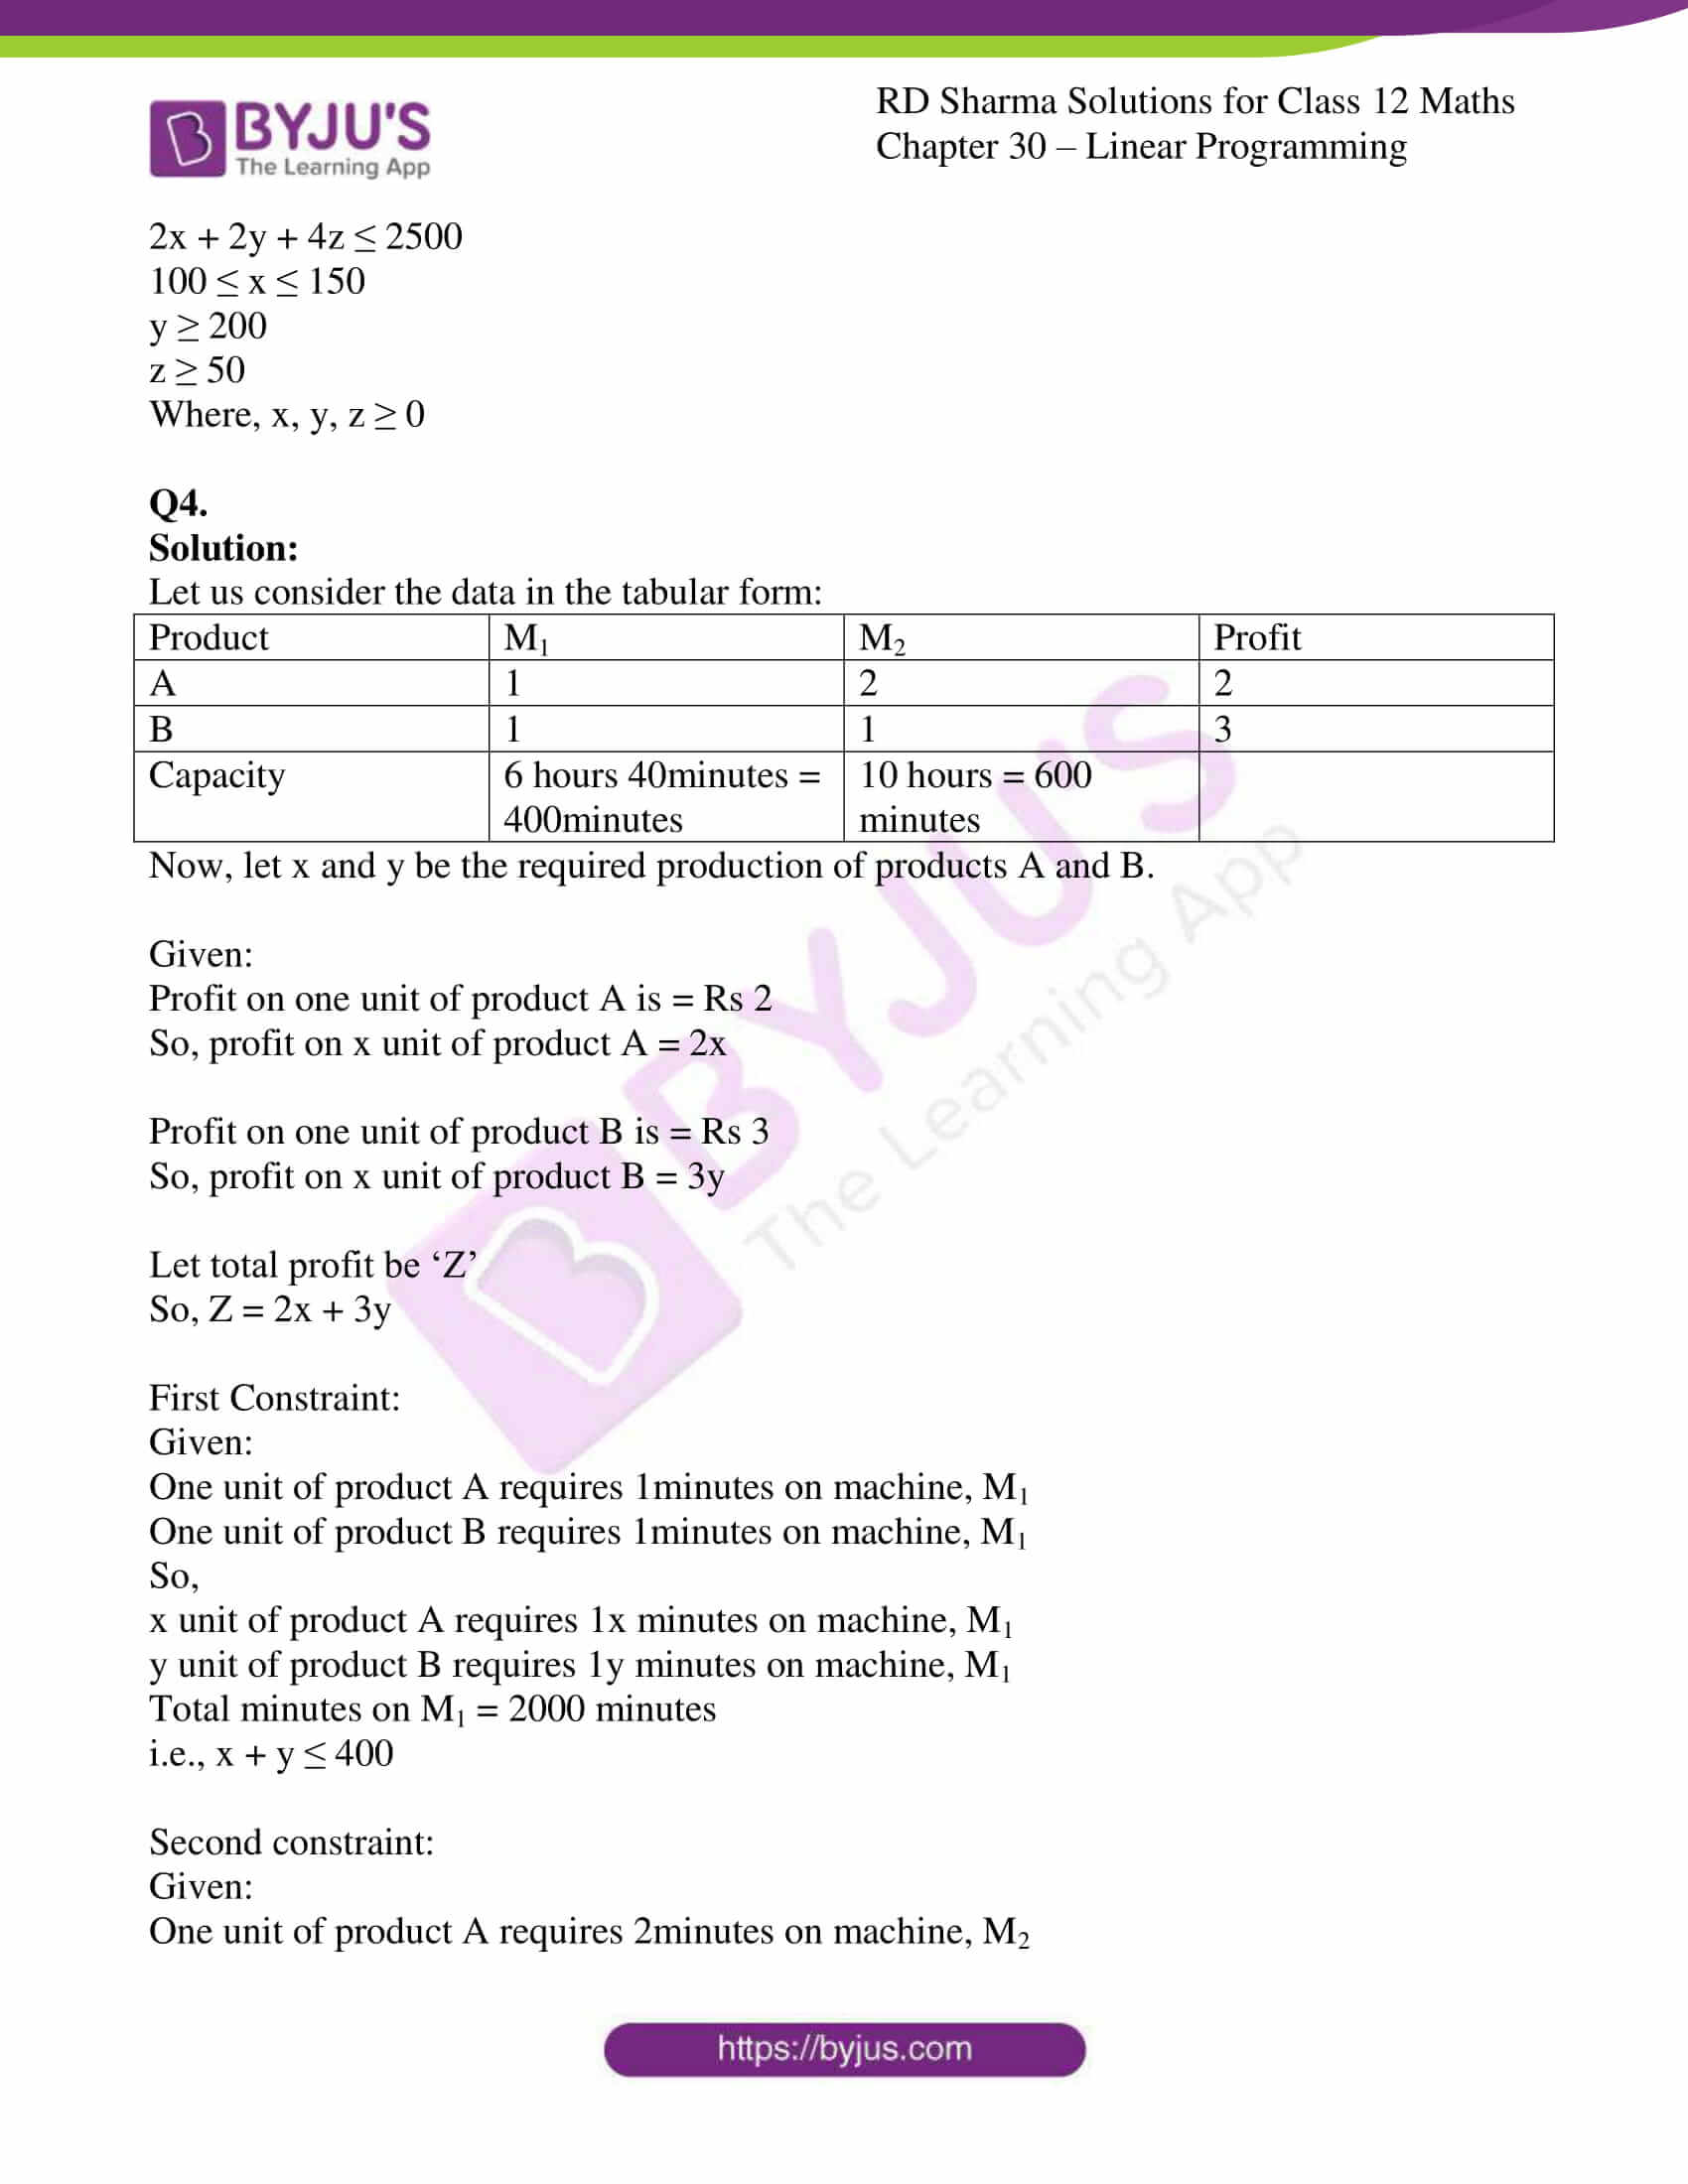 rd sharma solutions for class 12 maths chapter 30 ex 1 5